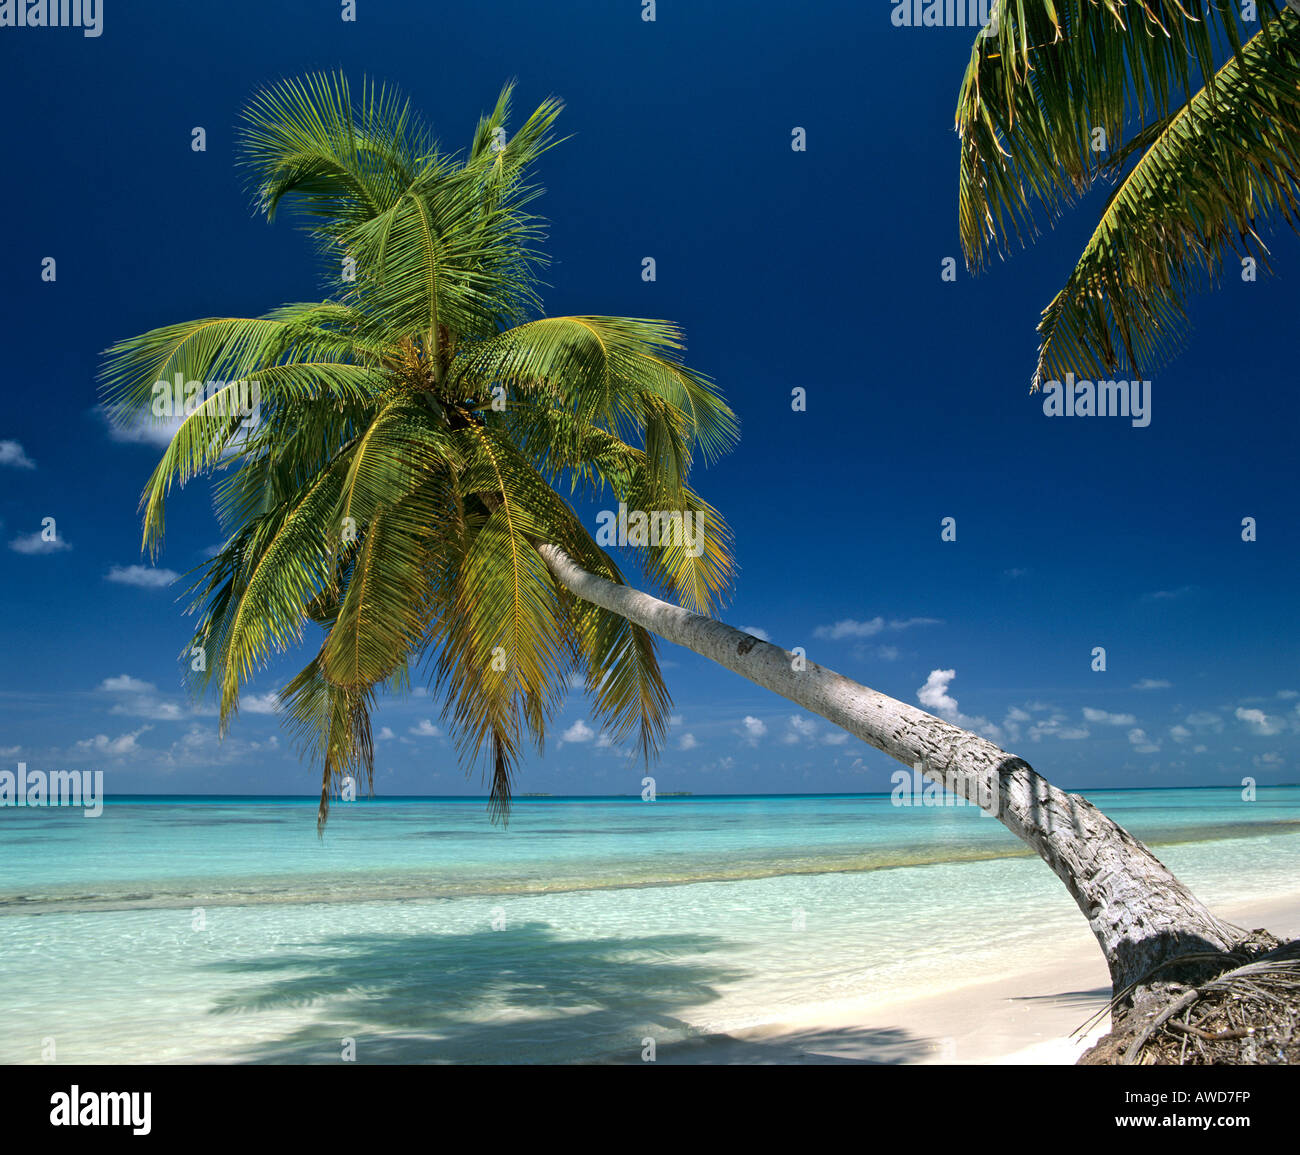 Palm tree on beach hanging over water, Maldives, Indian Ocean Stock Photo